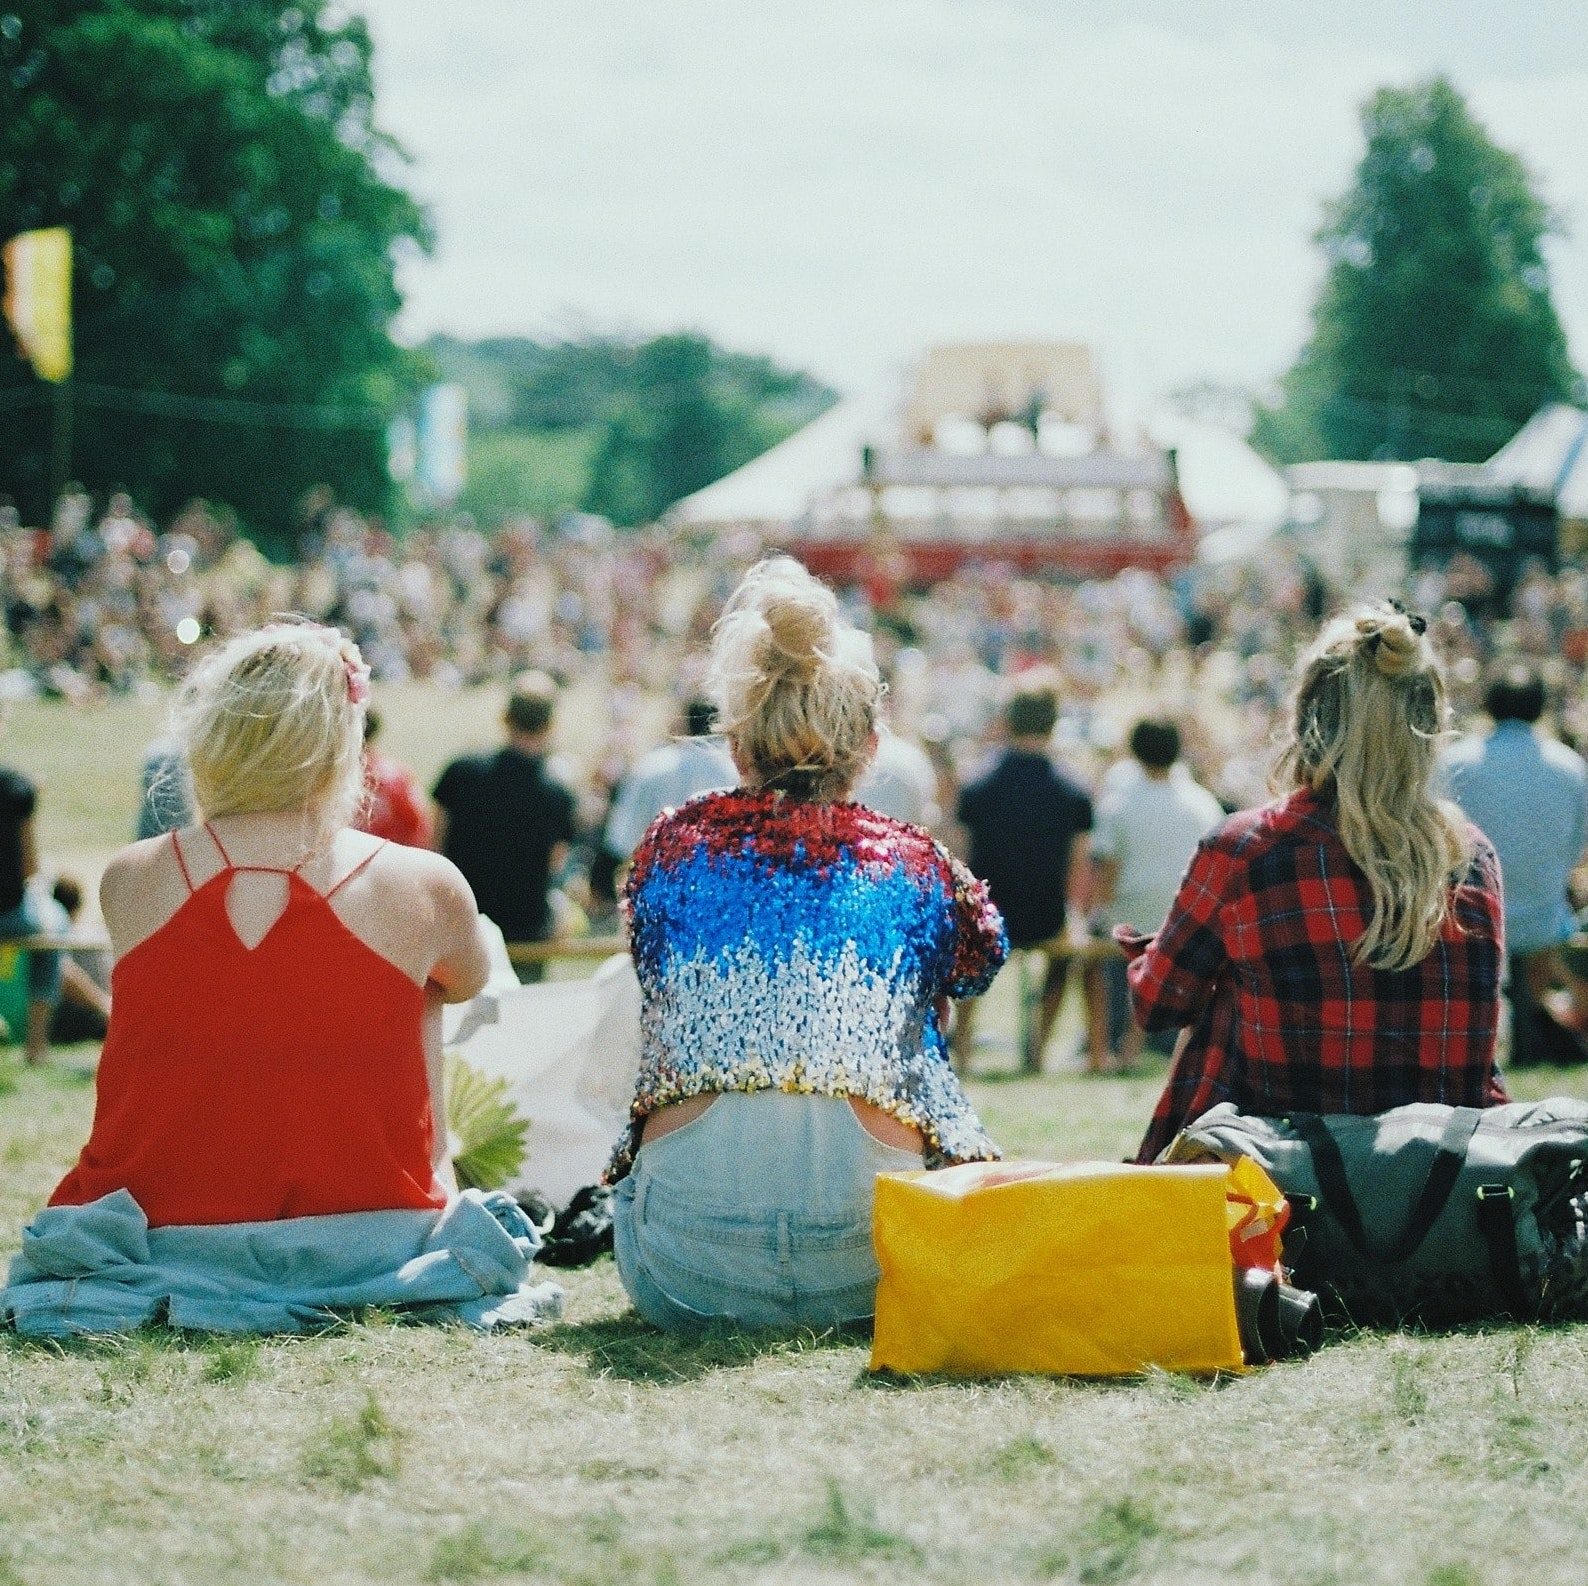 3 Girls at a festival